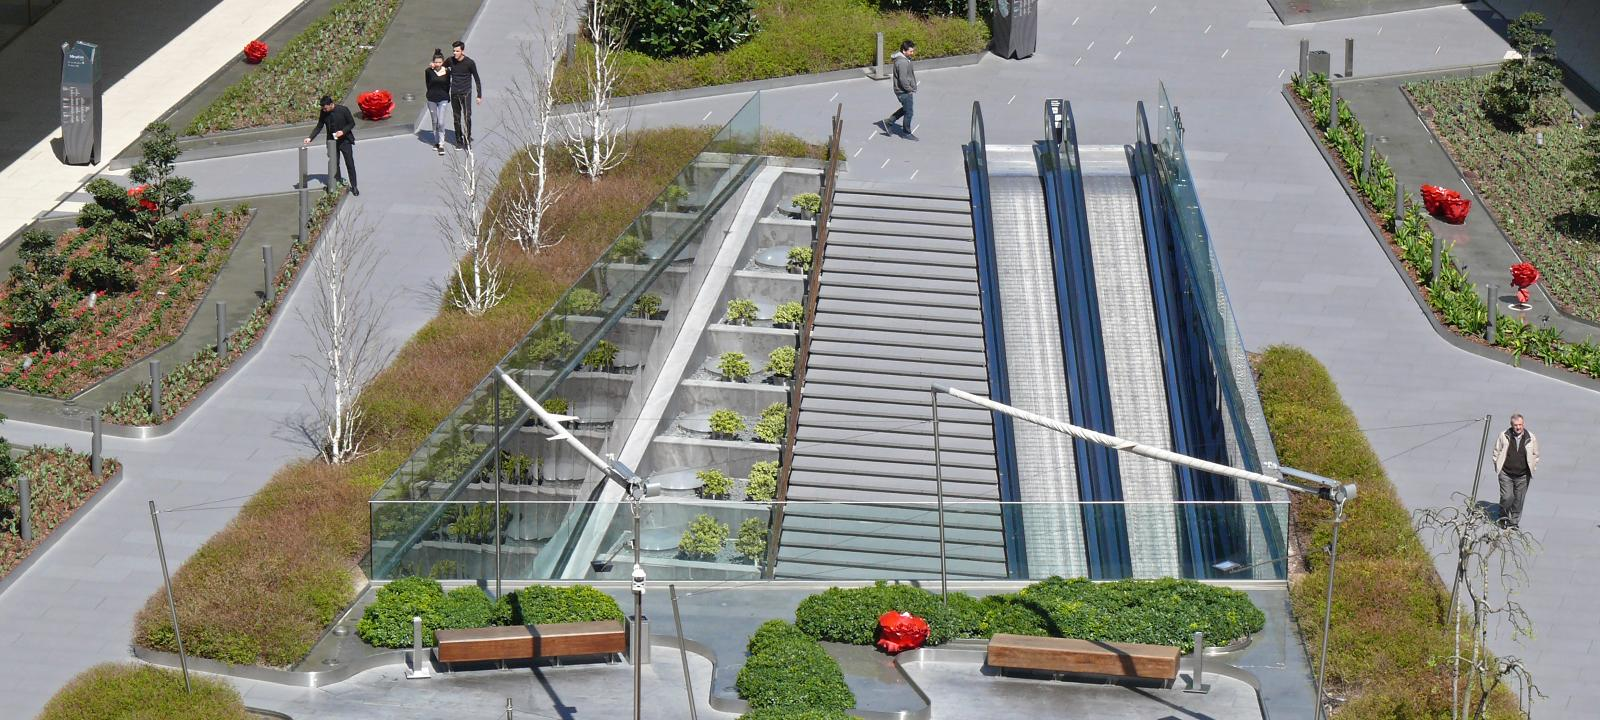 Walkyways and plant beds on the rooftop of a shopping mall